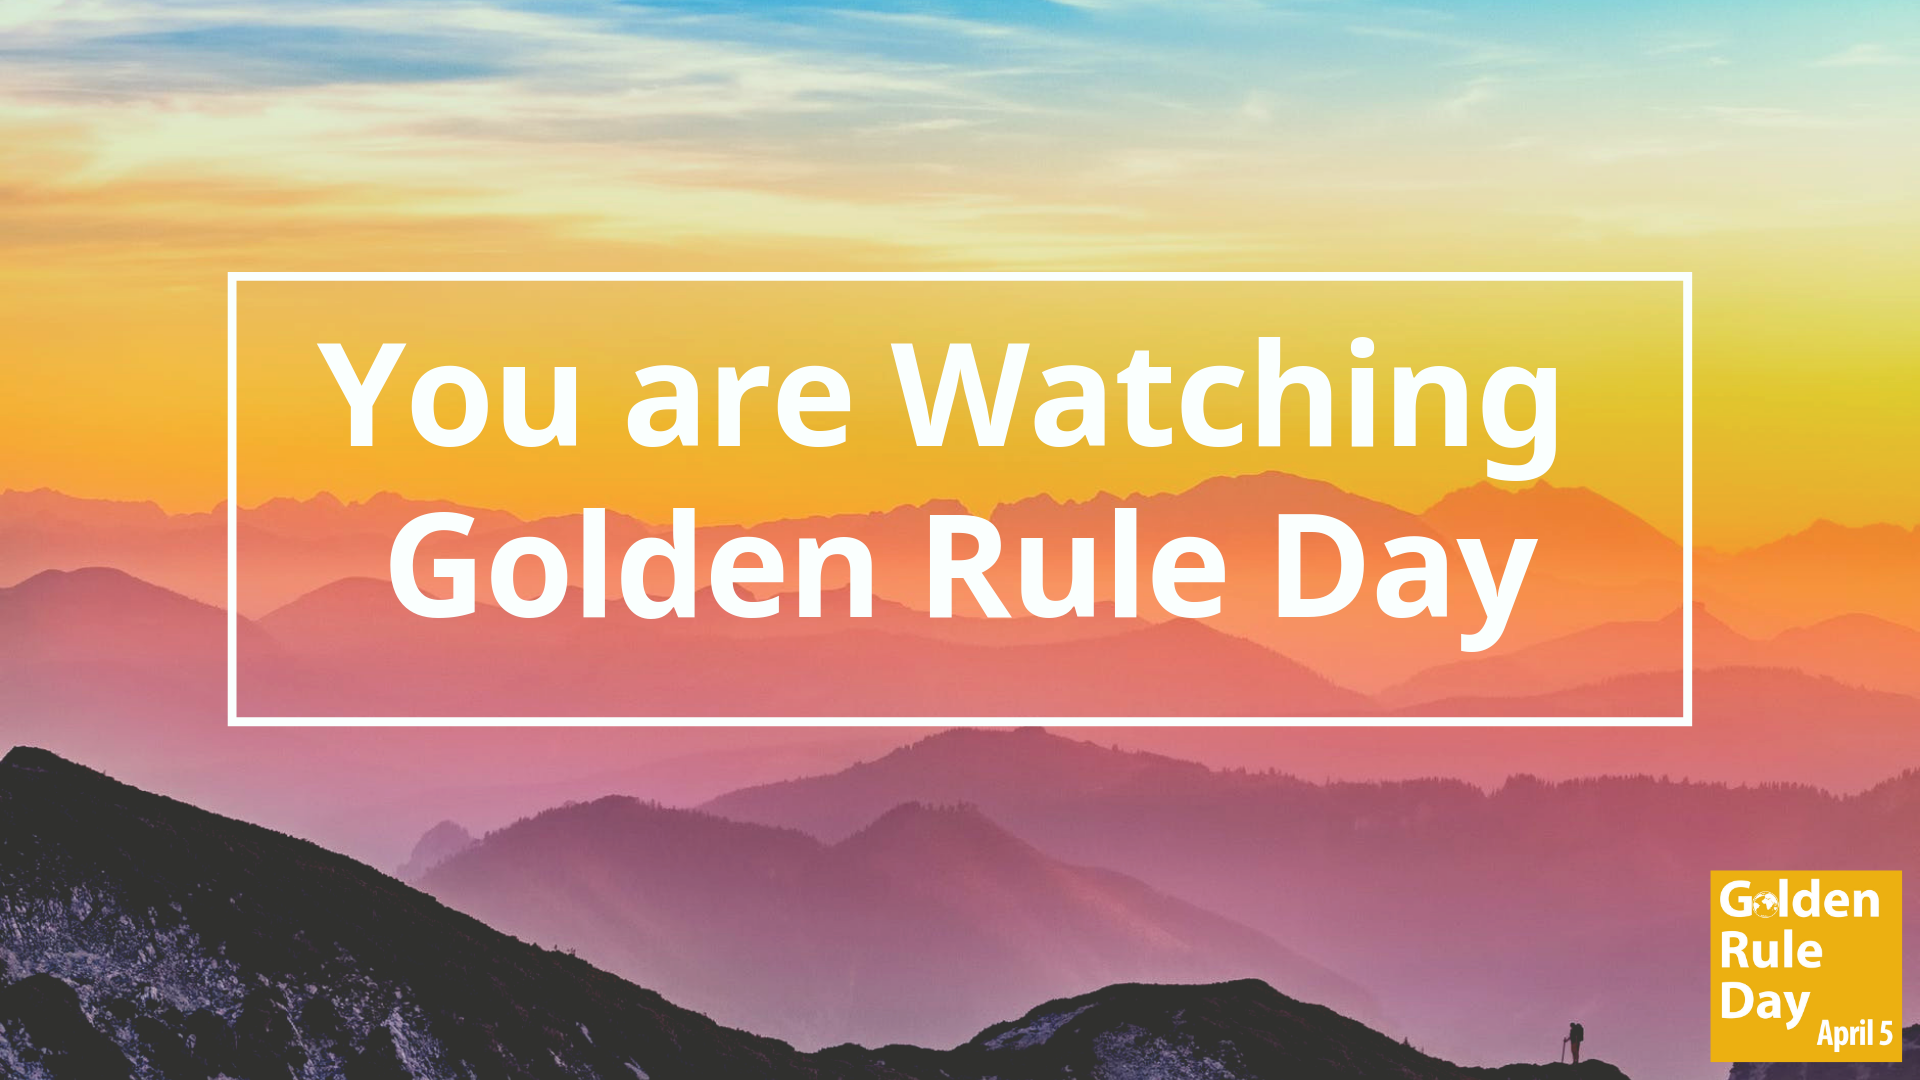 golden rule day 2019 watching